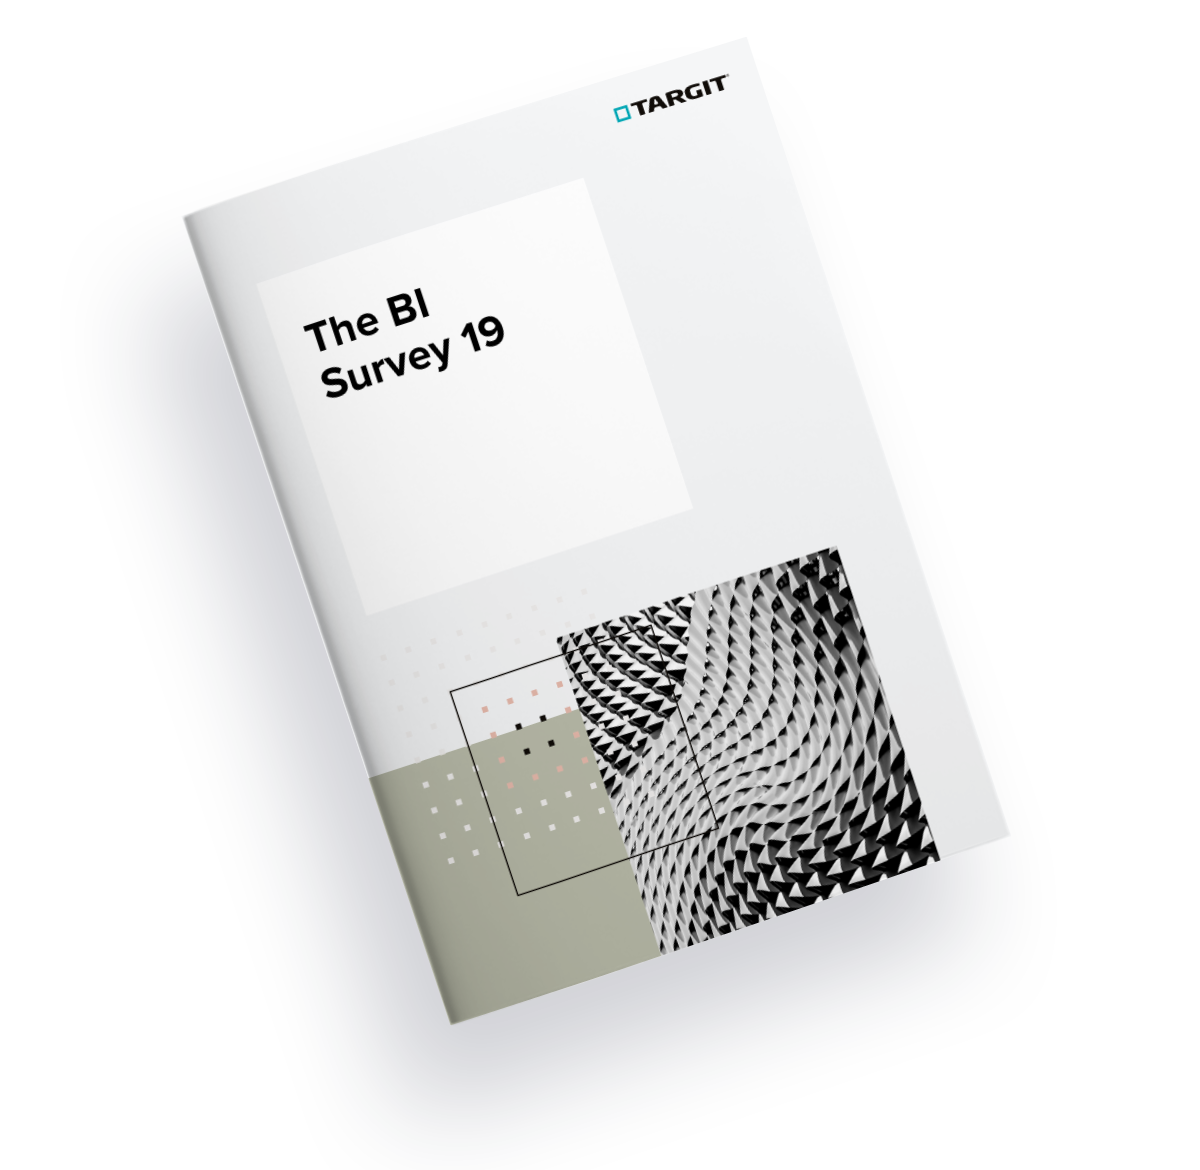 The BI Survey 19 cover